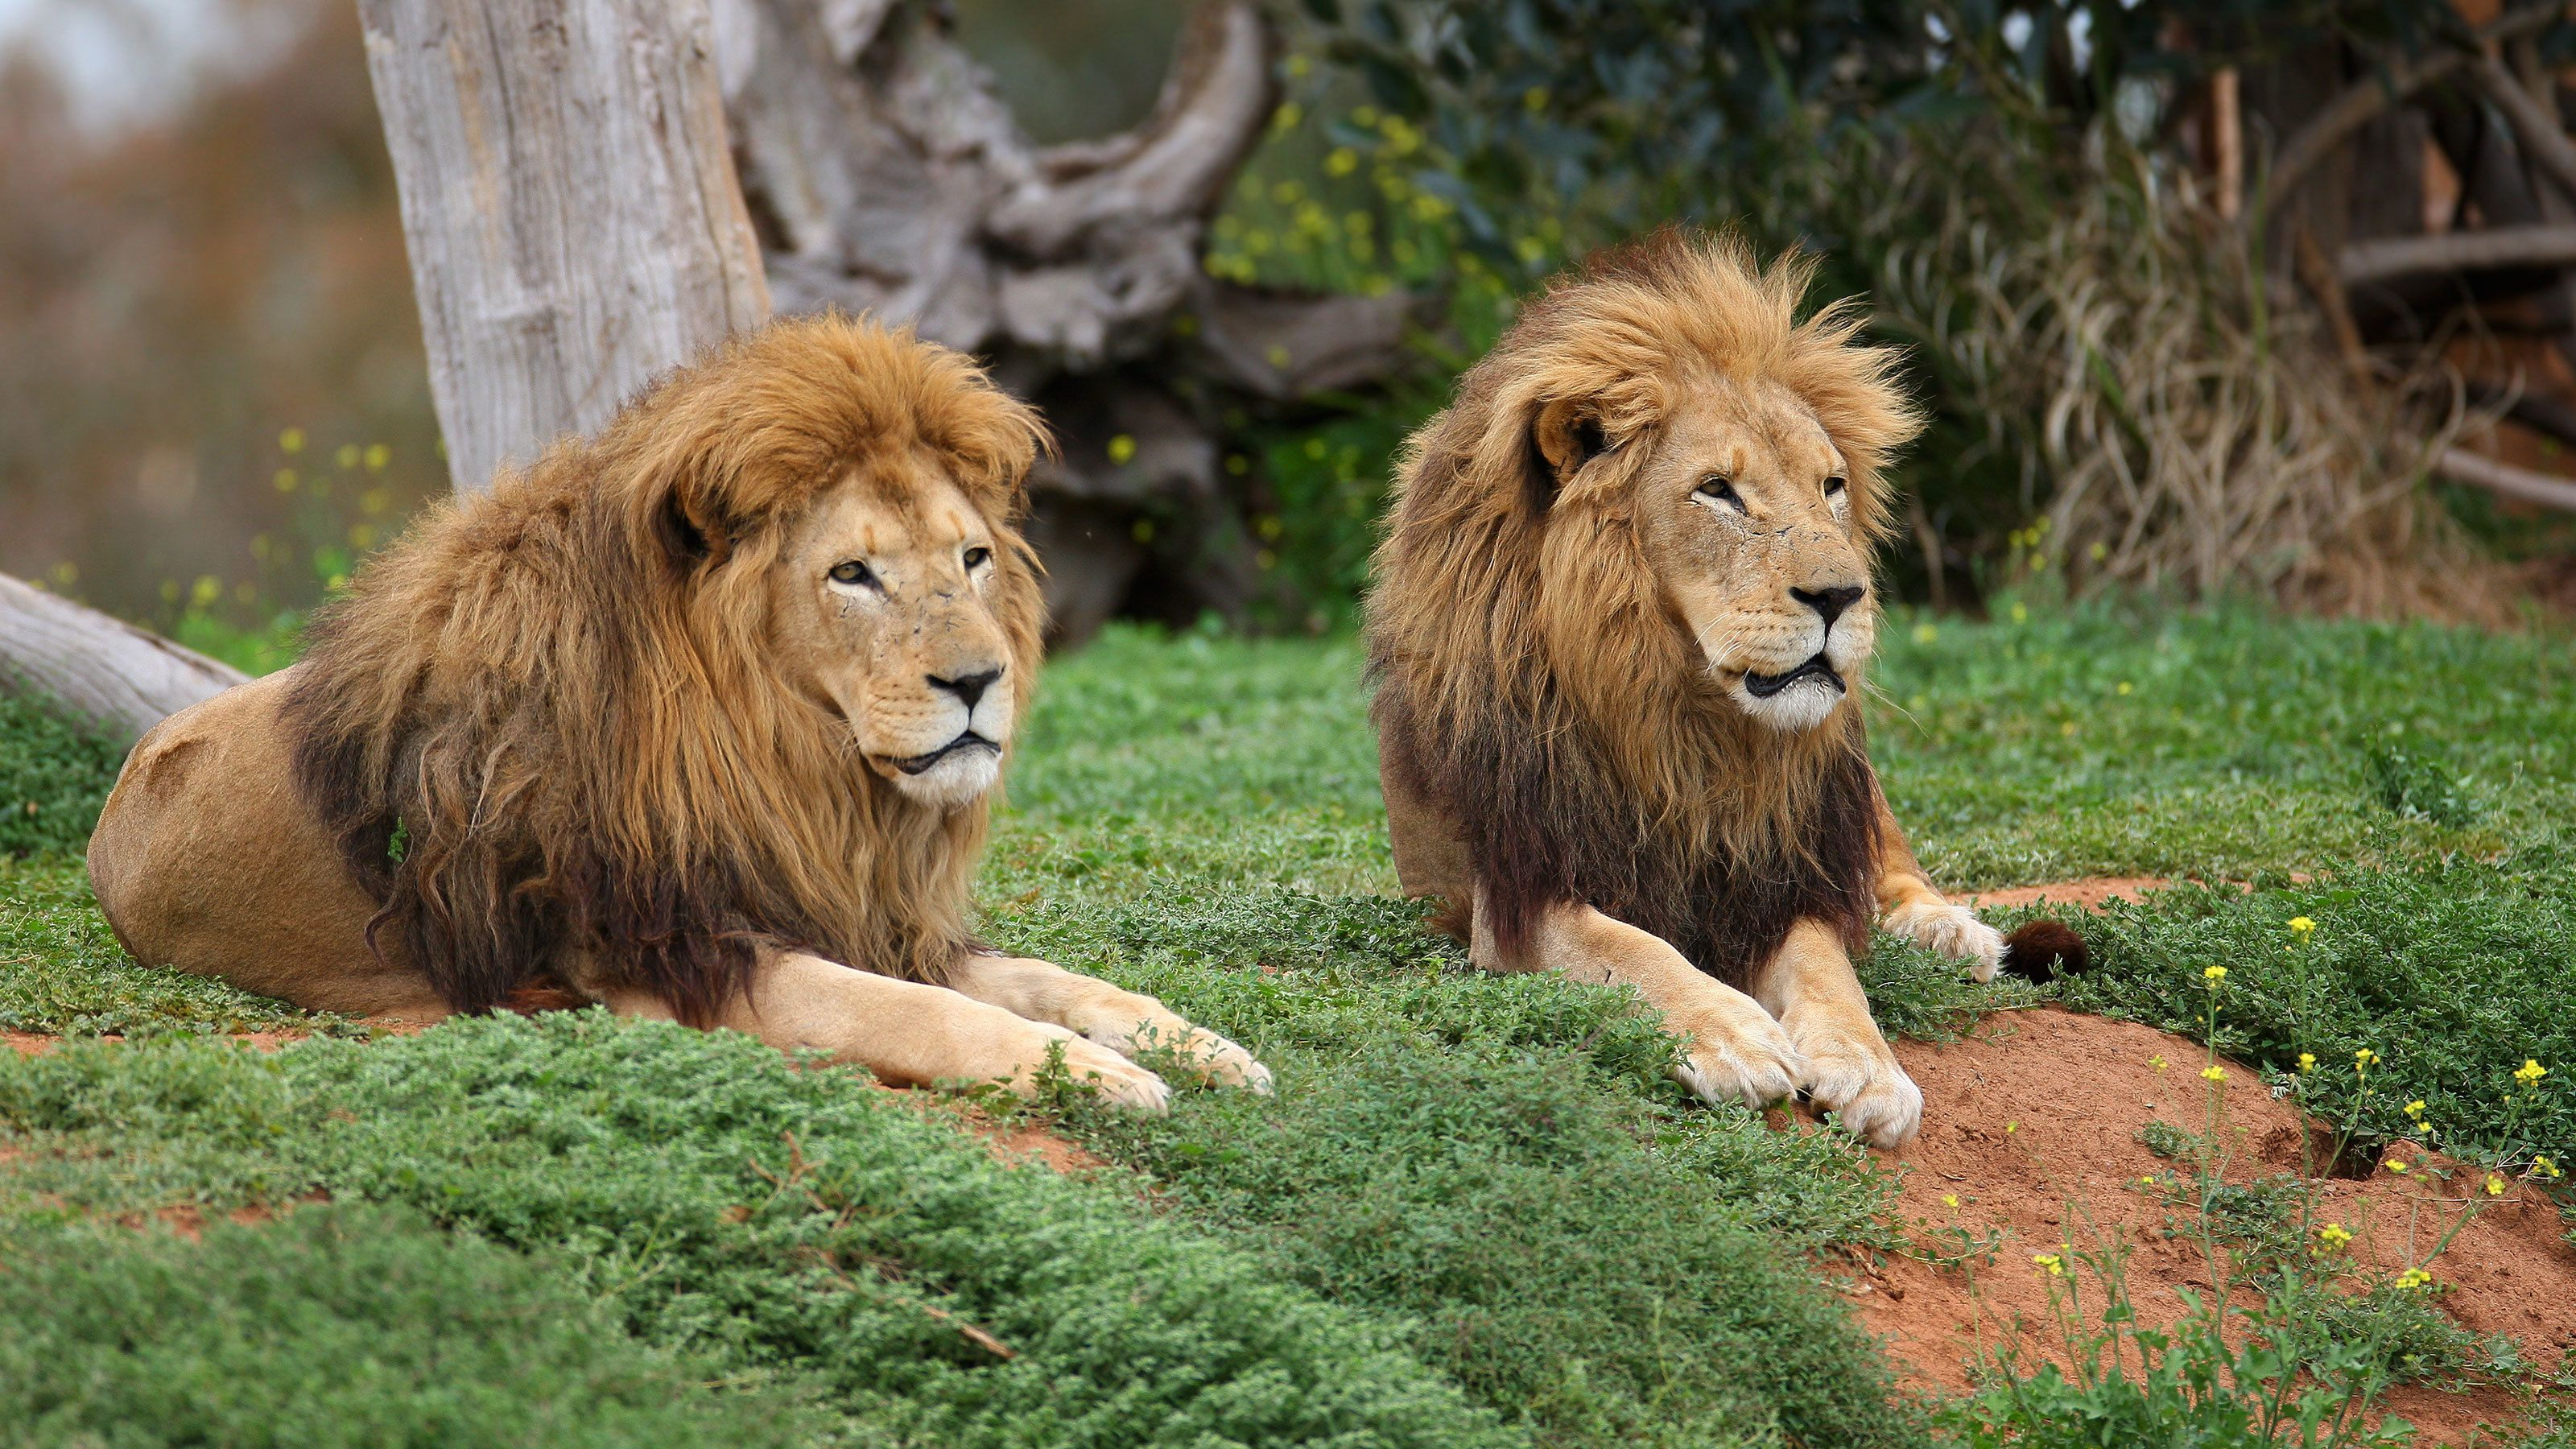 Two male lions resting at the Werribee Open Range Zoo in Australia